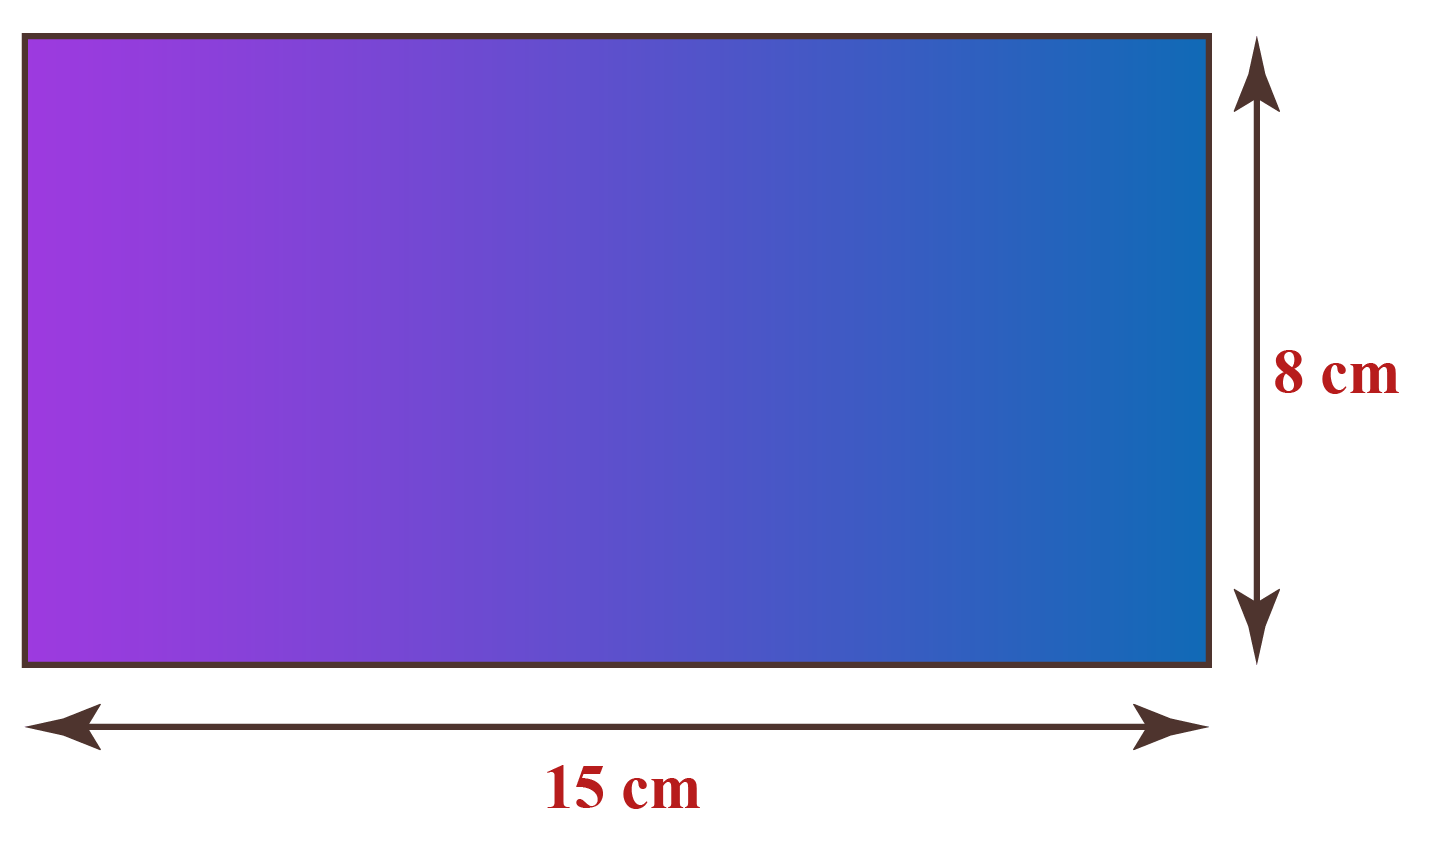 Solved example: Find the area of a rectangle of sides 15 cm and 8 cm.